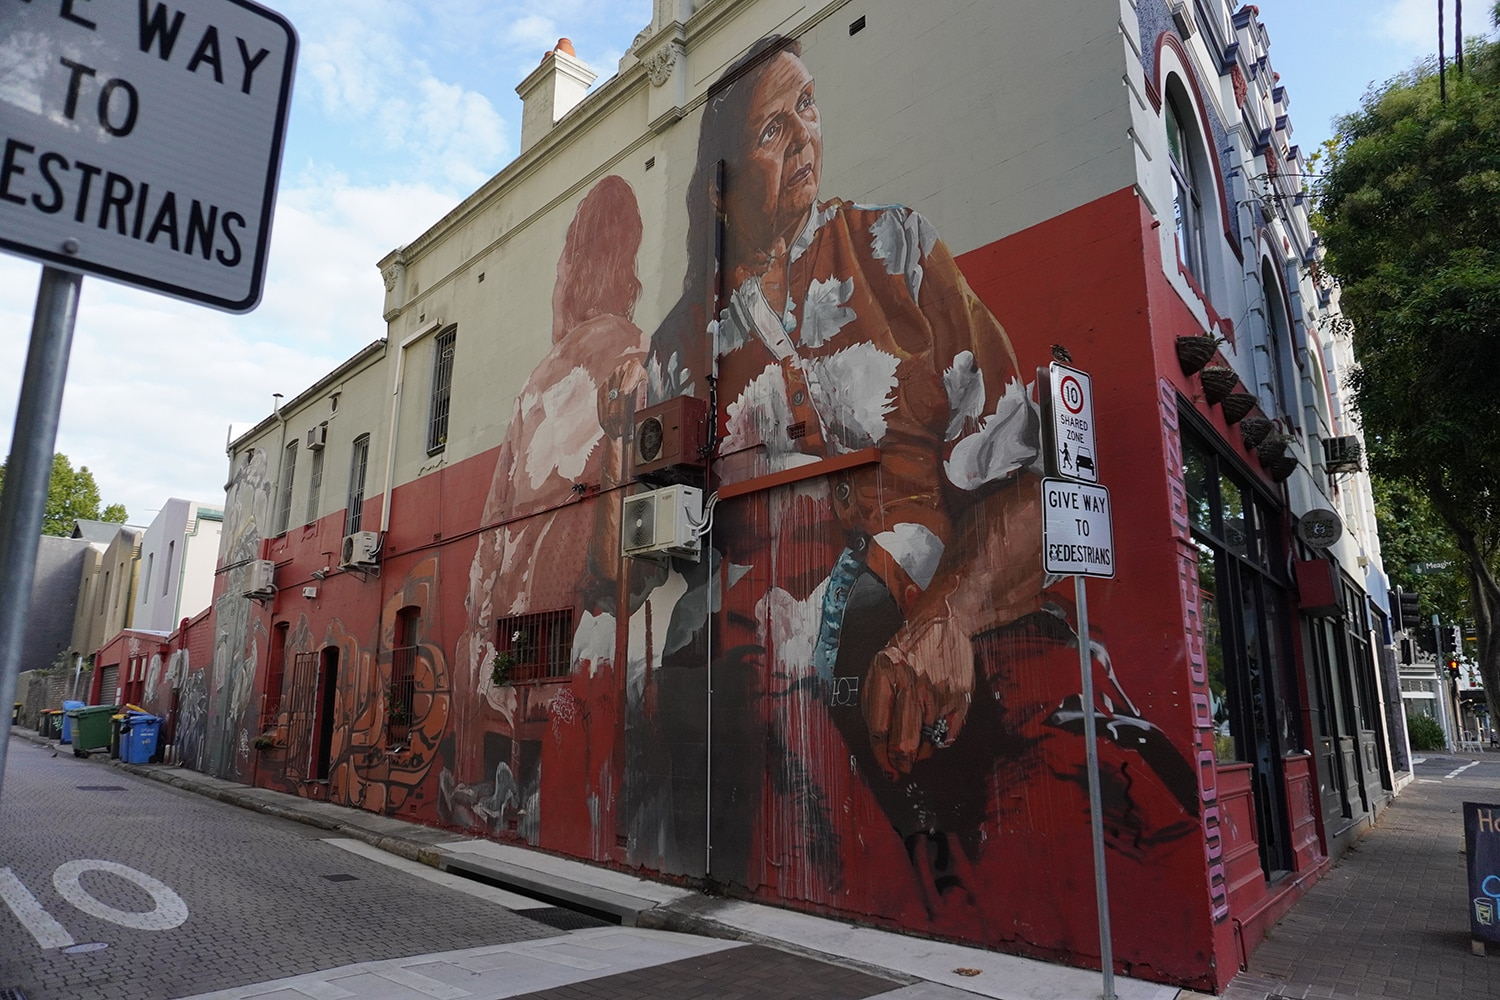 Teggs Lane Chippendale Street Art Sydney Art Out Live January 2021 (2) Fintan Magee